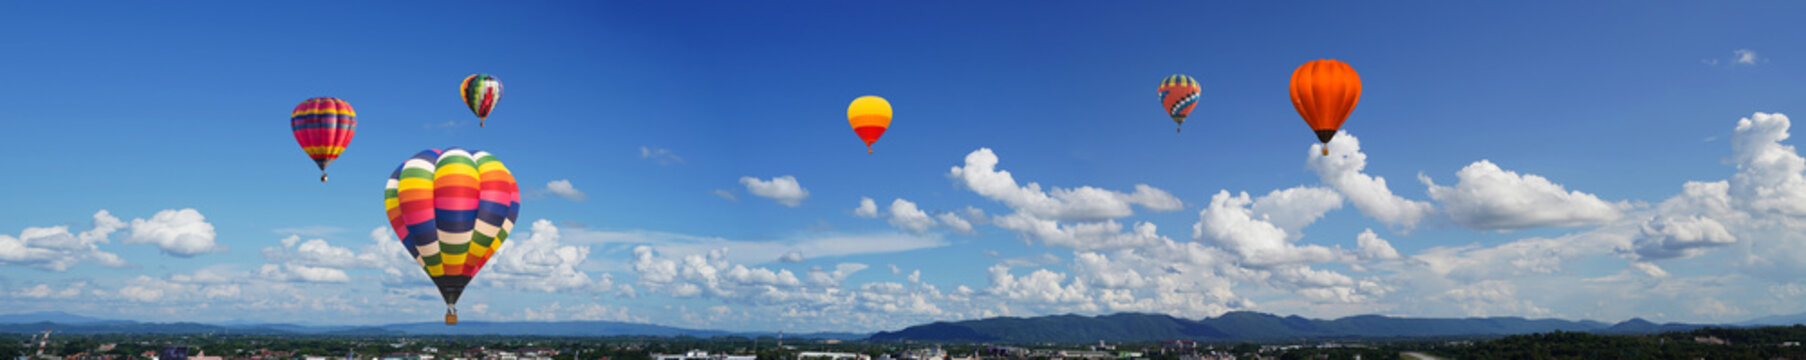 panorama of color hot air balloons in blue sky over the city background.